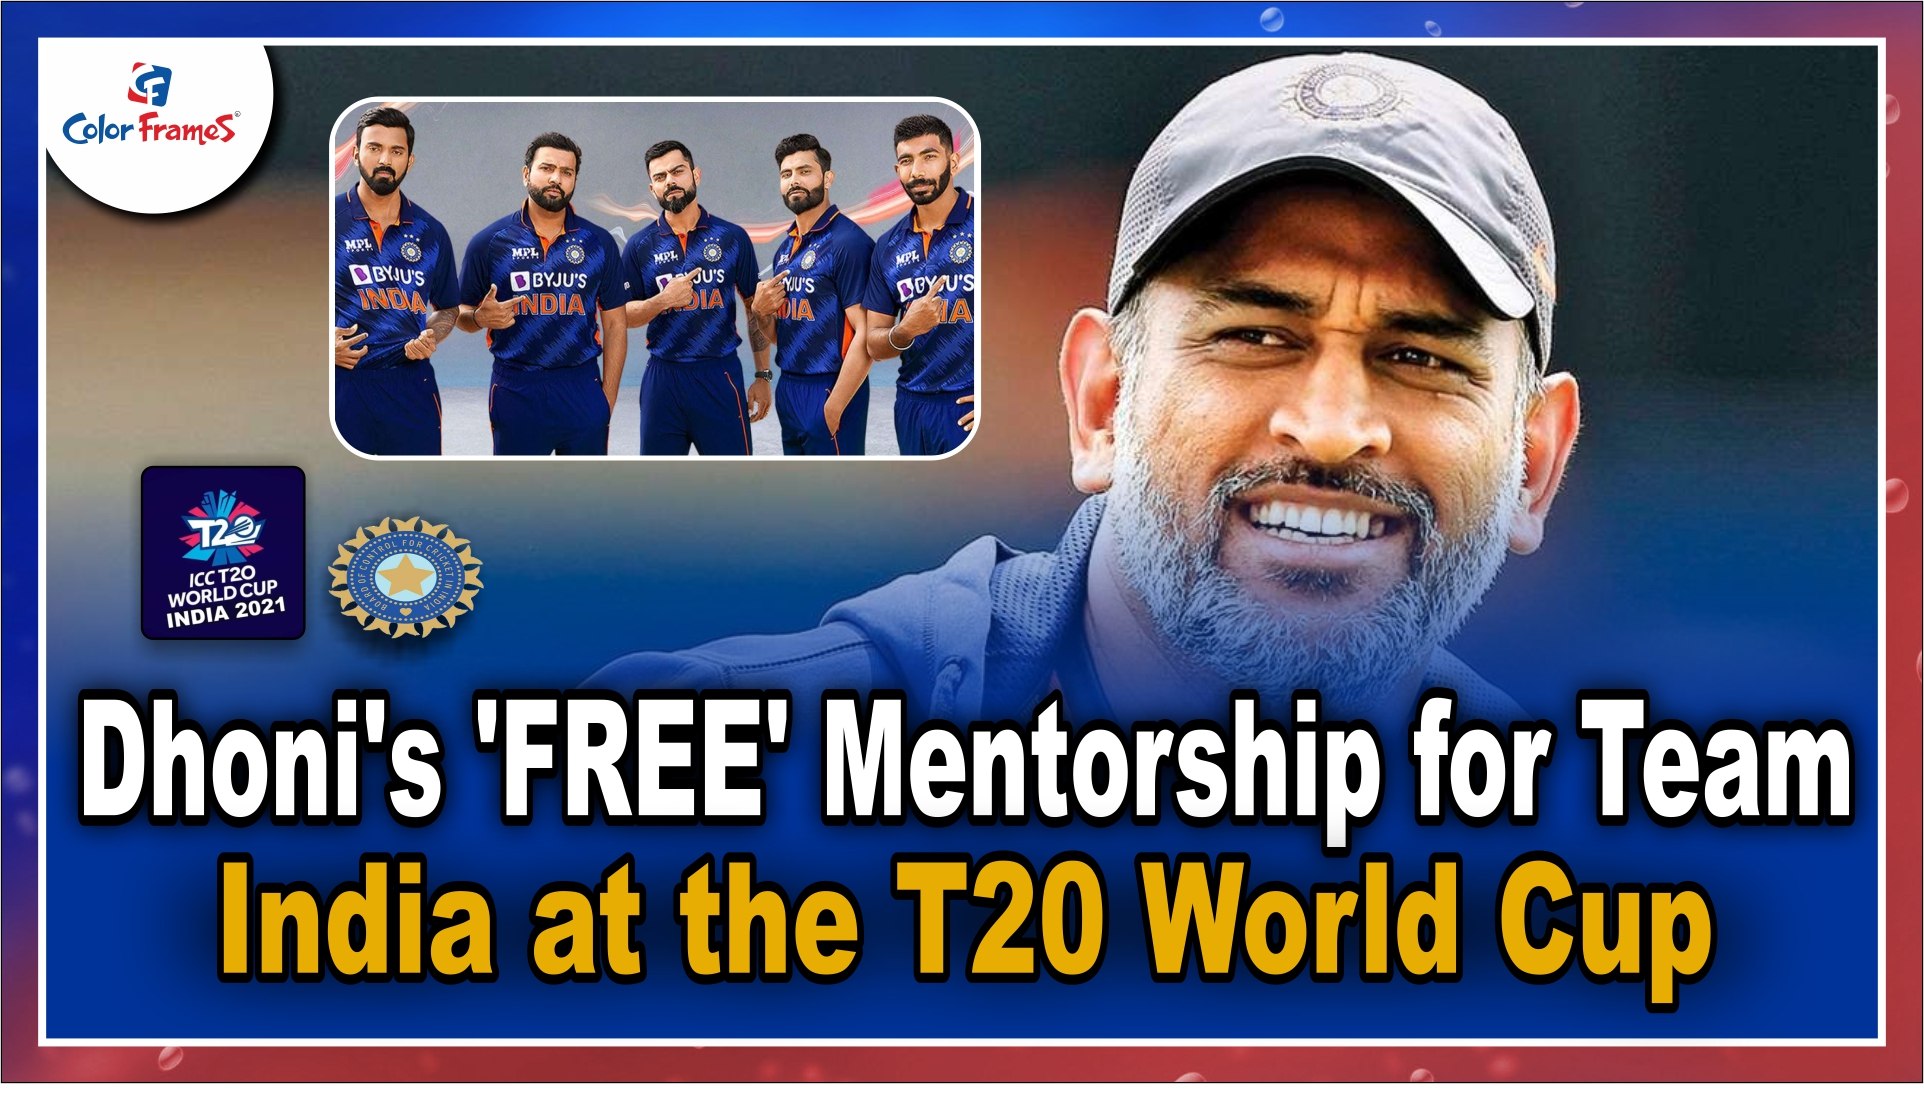 Dhoni's 'FREE' Mentorship for Team India at the T20 World Cup